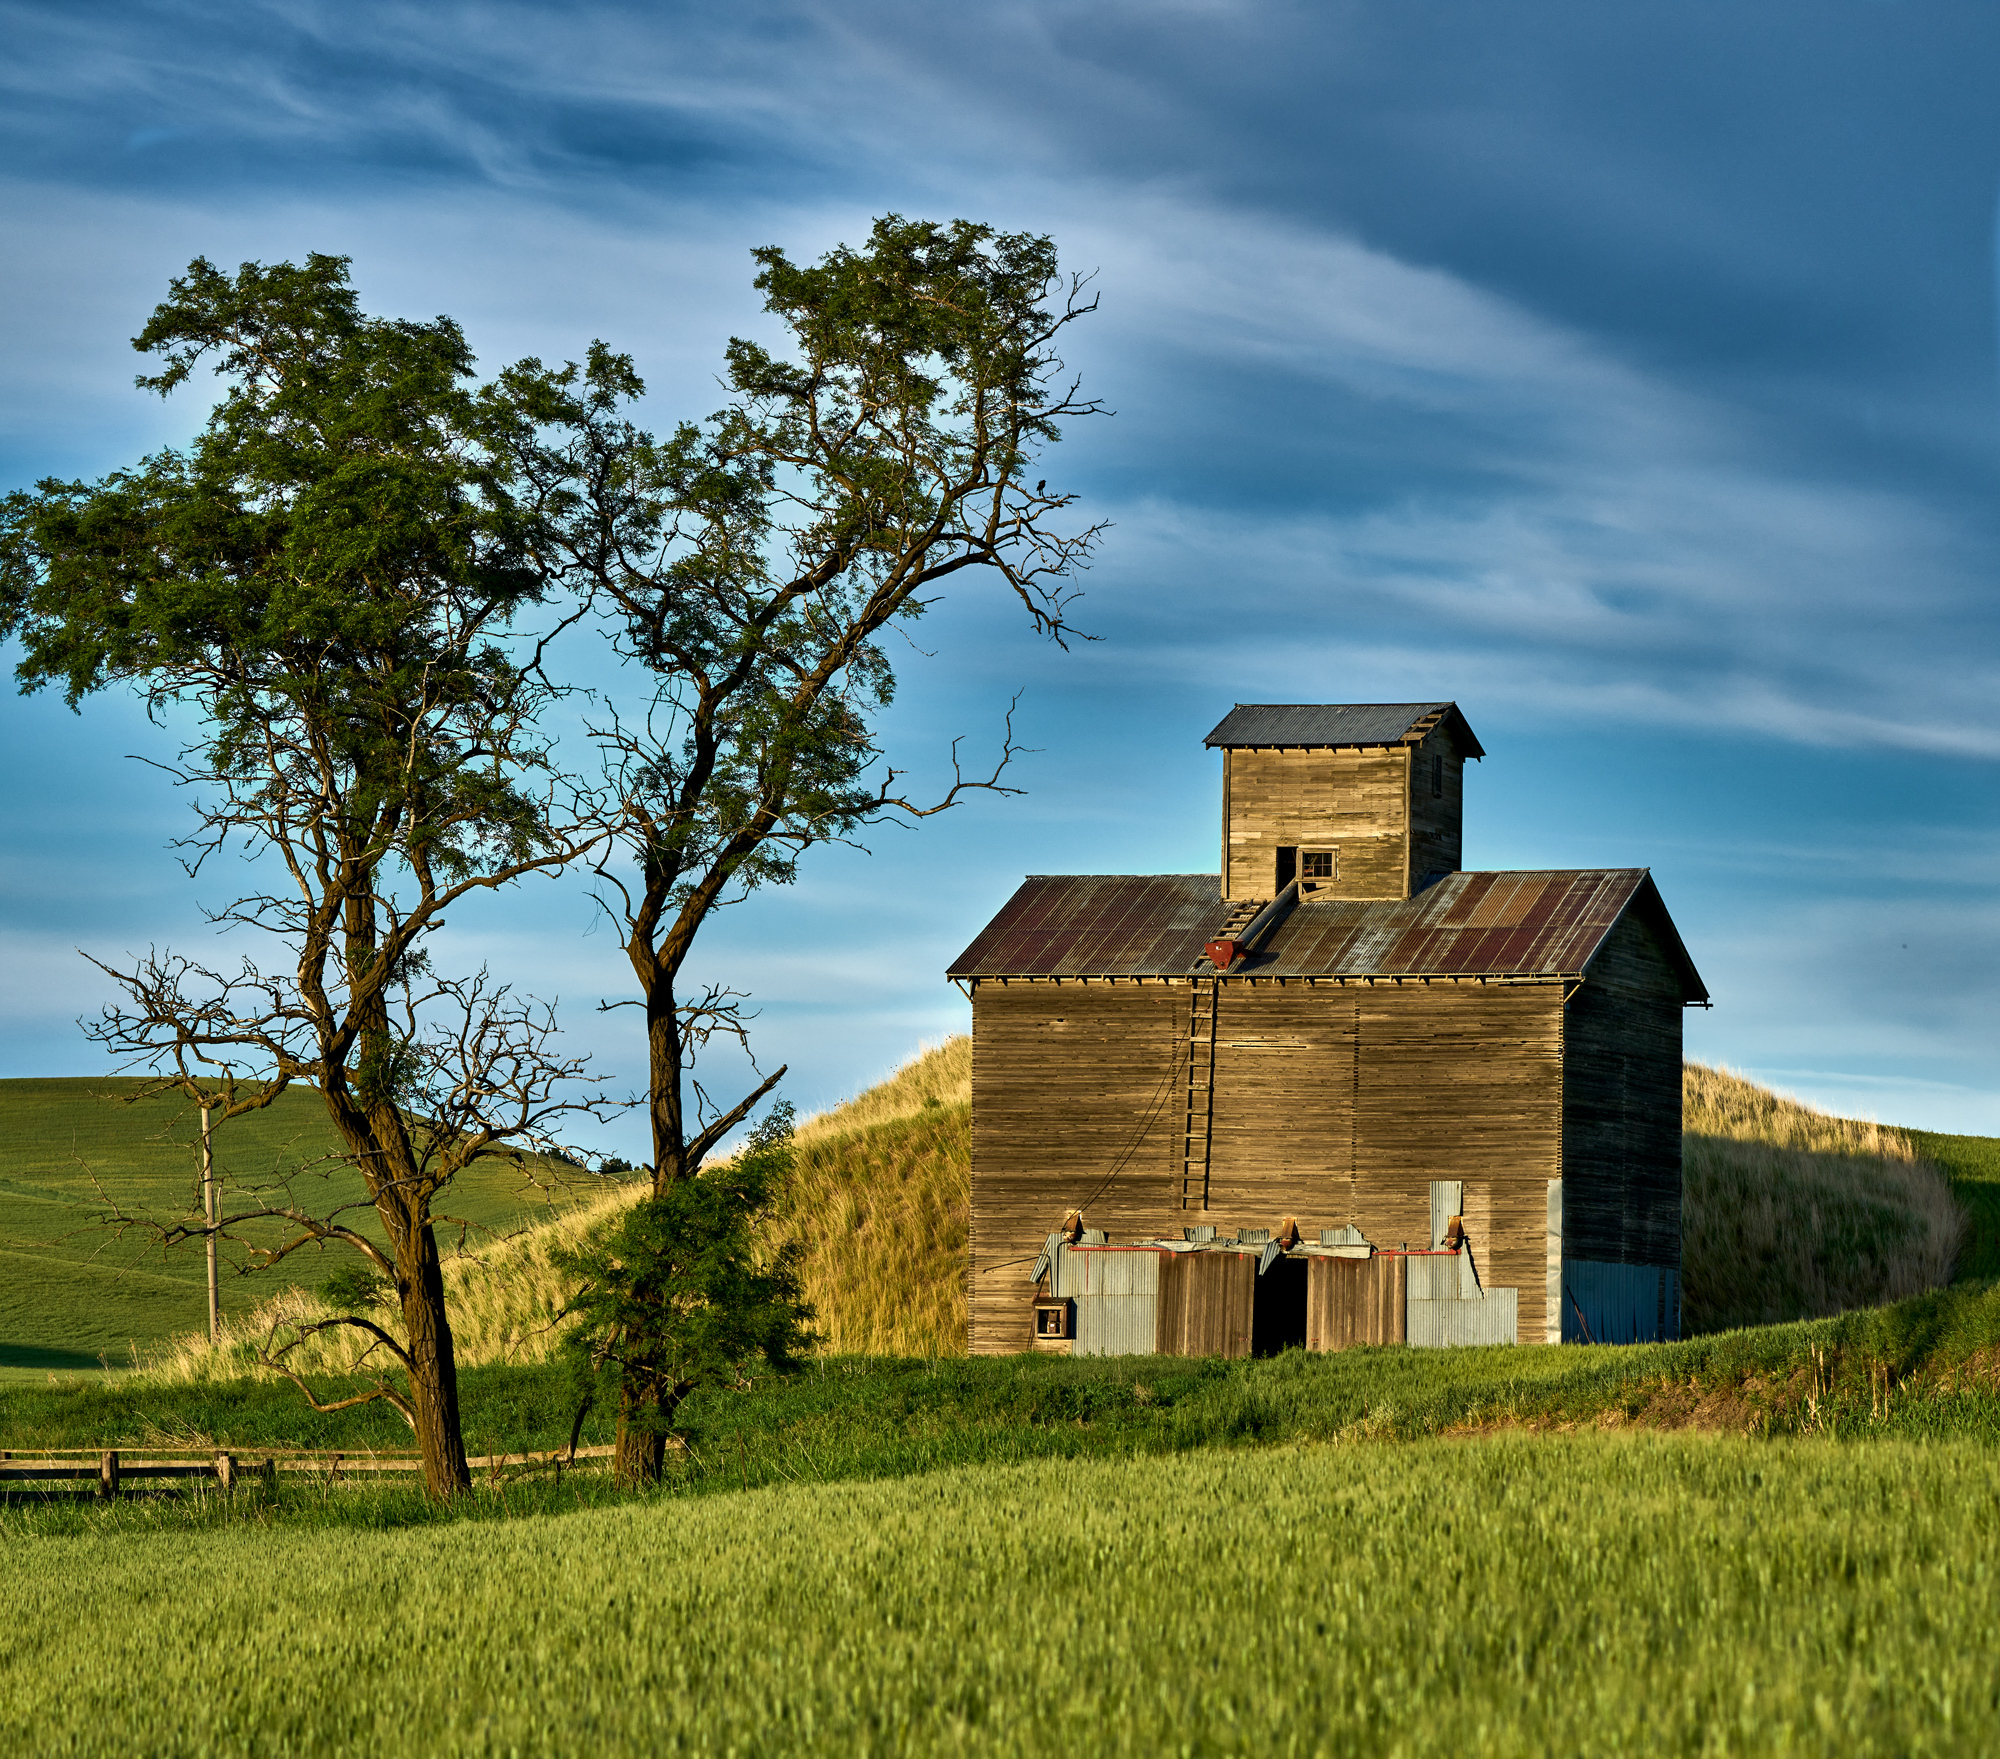 The evening light was perfect for the grain silo photo